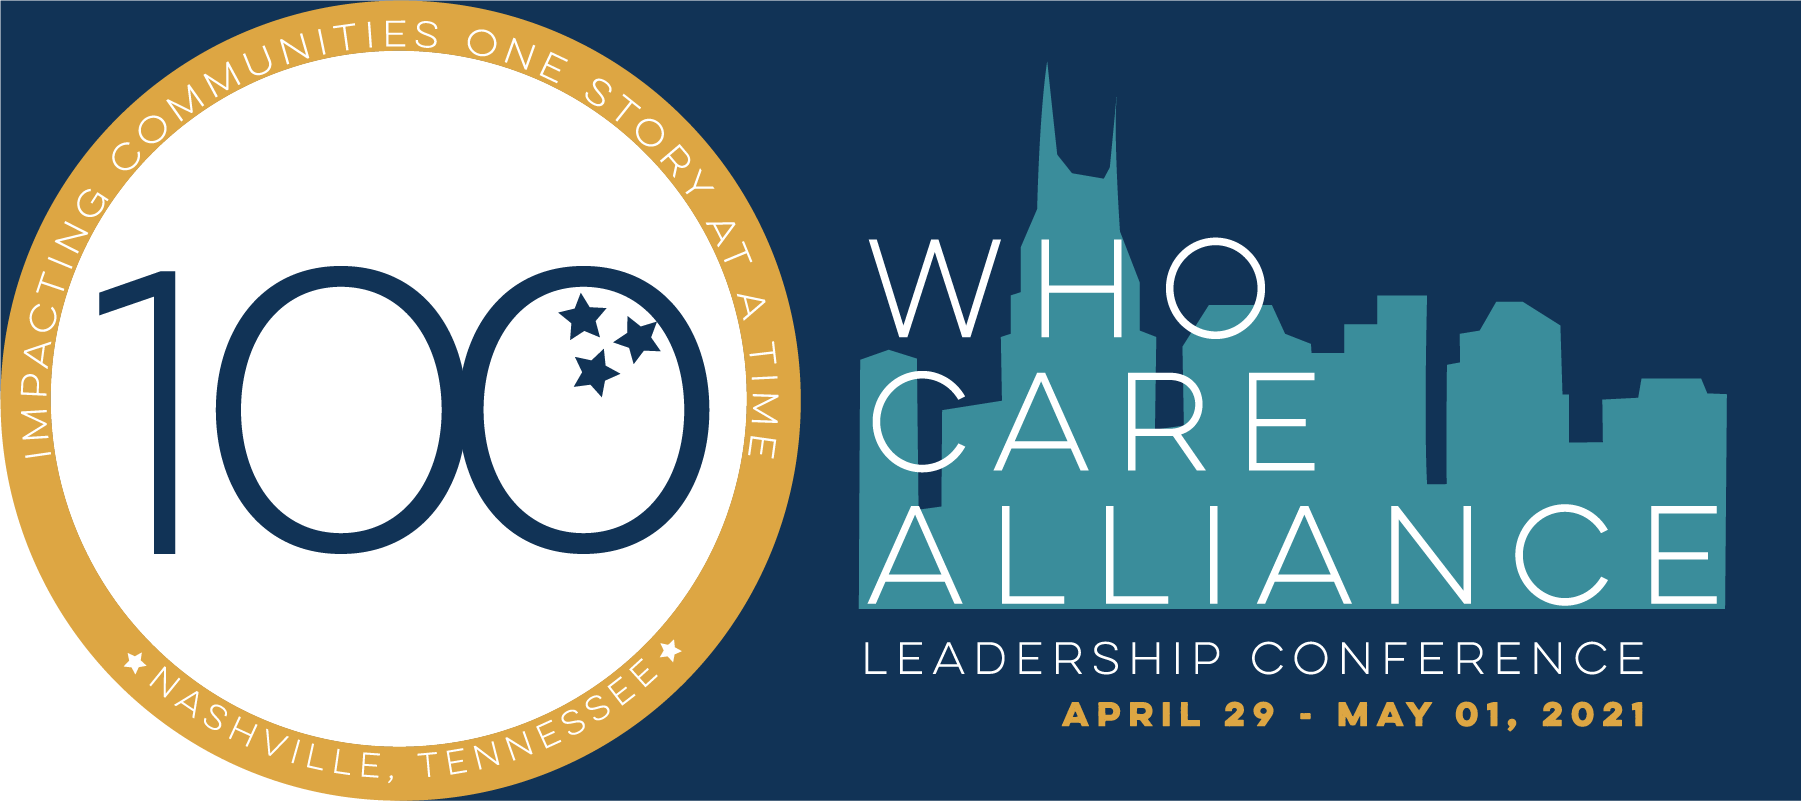 100 who care alliance 2021 conference logo